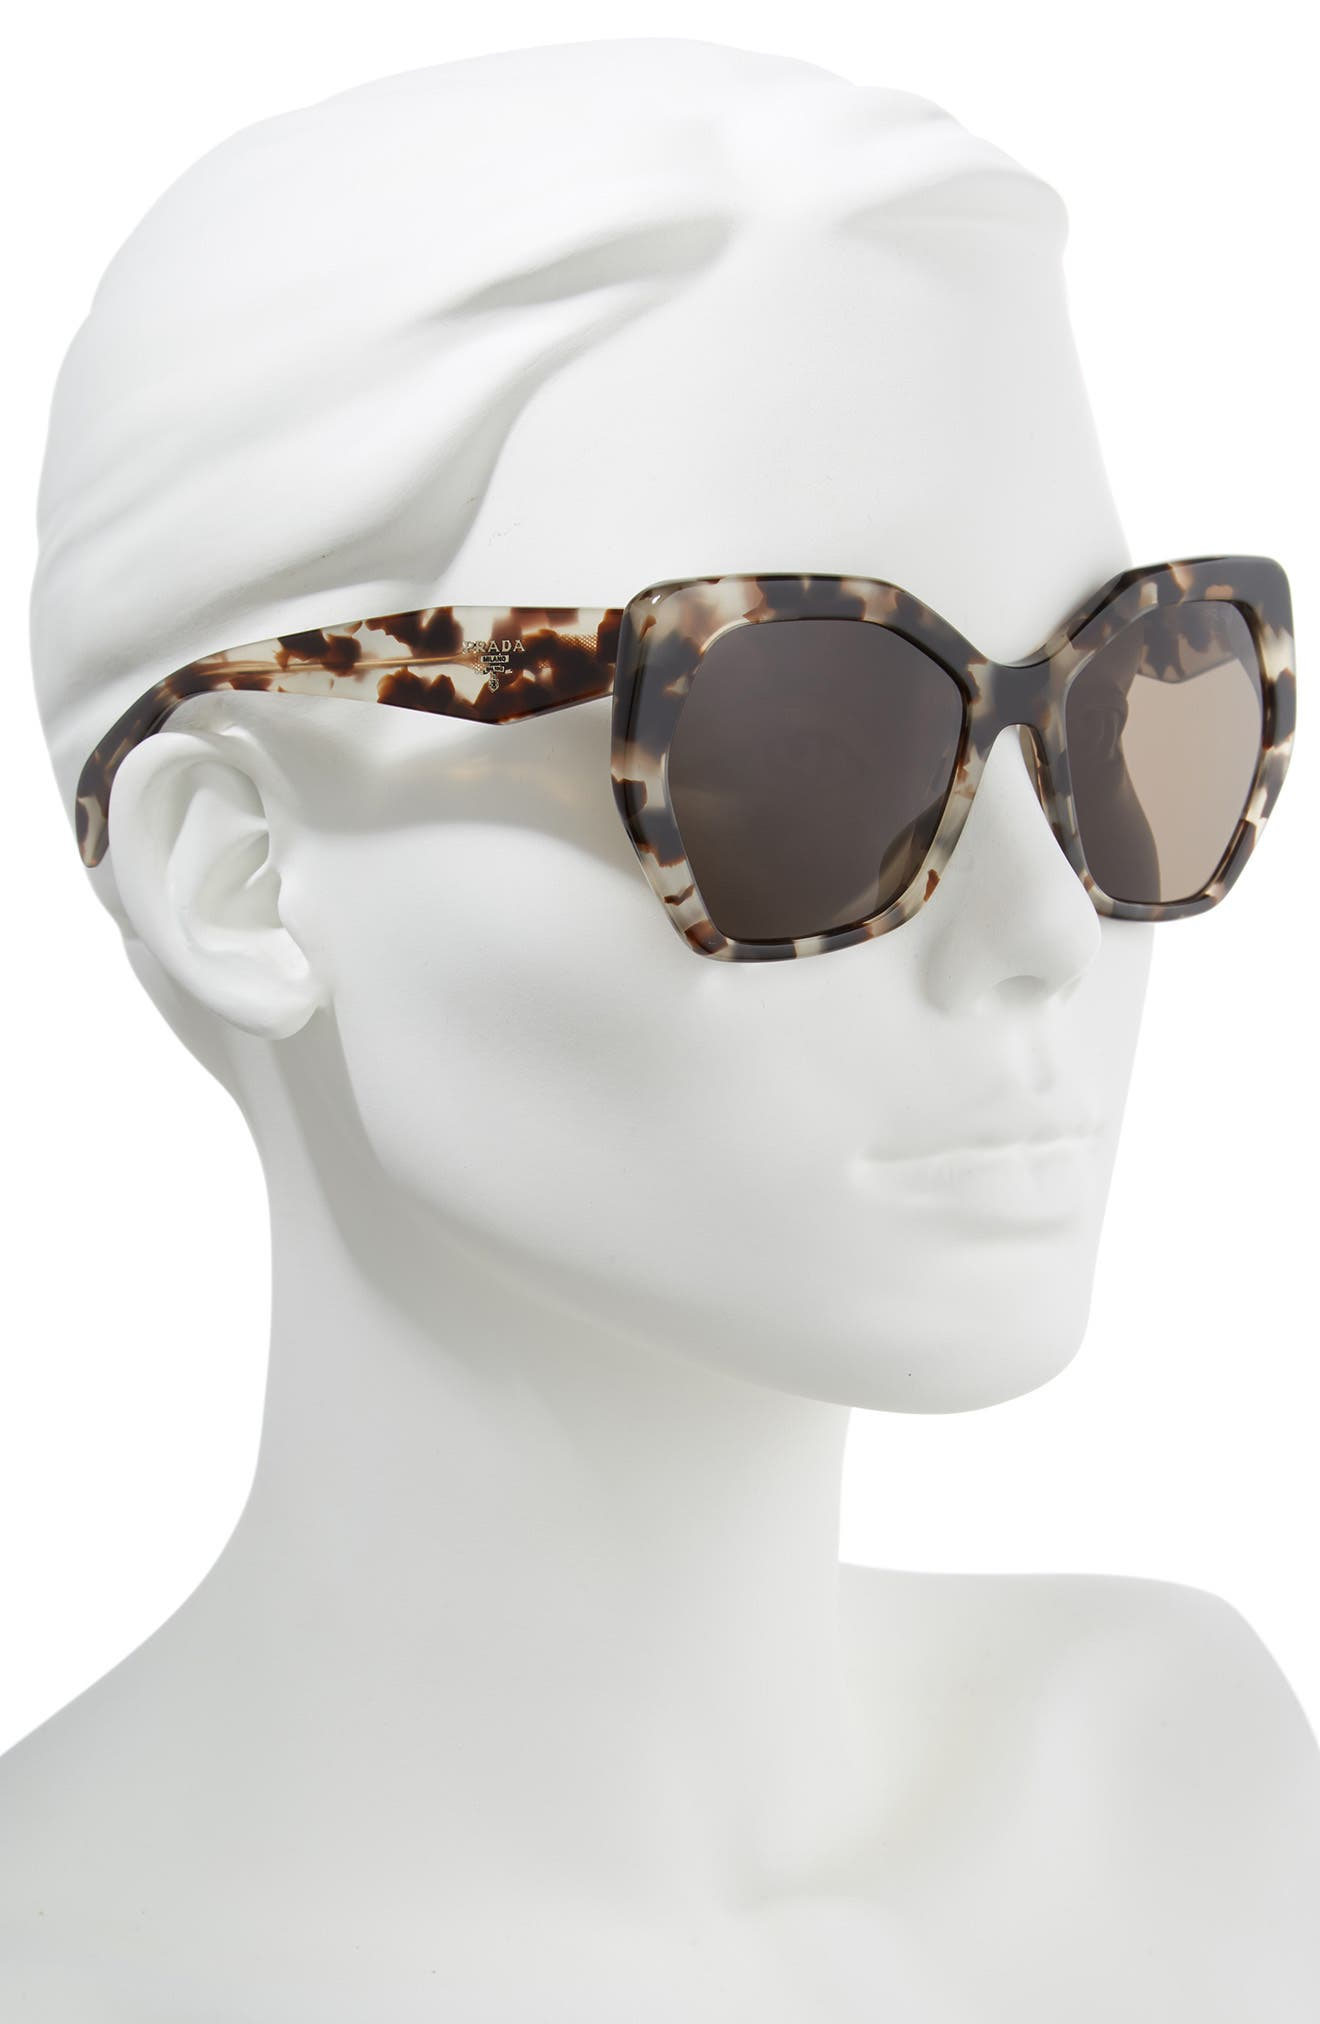 Heritage 56mm Sunglasses,                             Alternate thumbnail 2, color,                             Spotted Opal Brown Solid